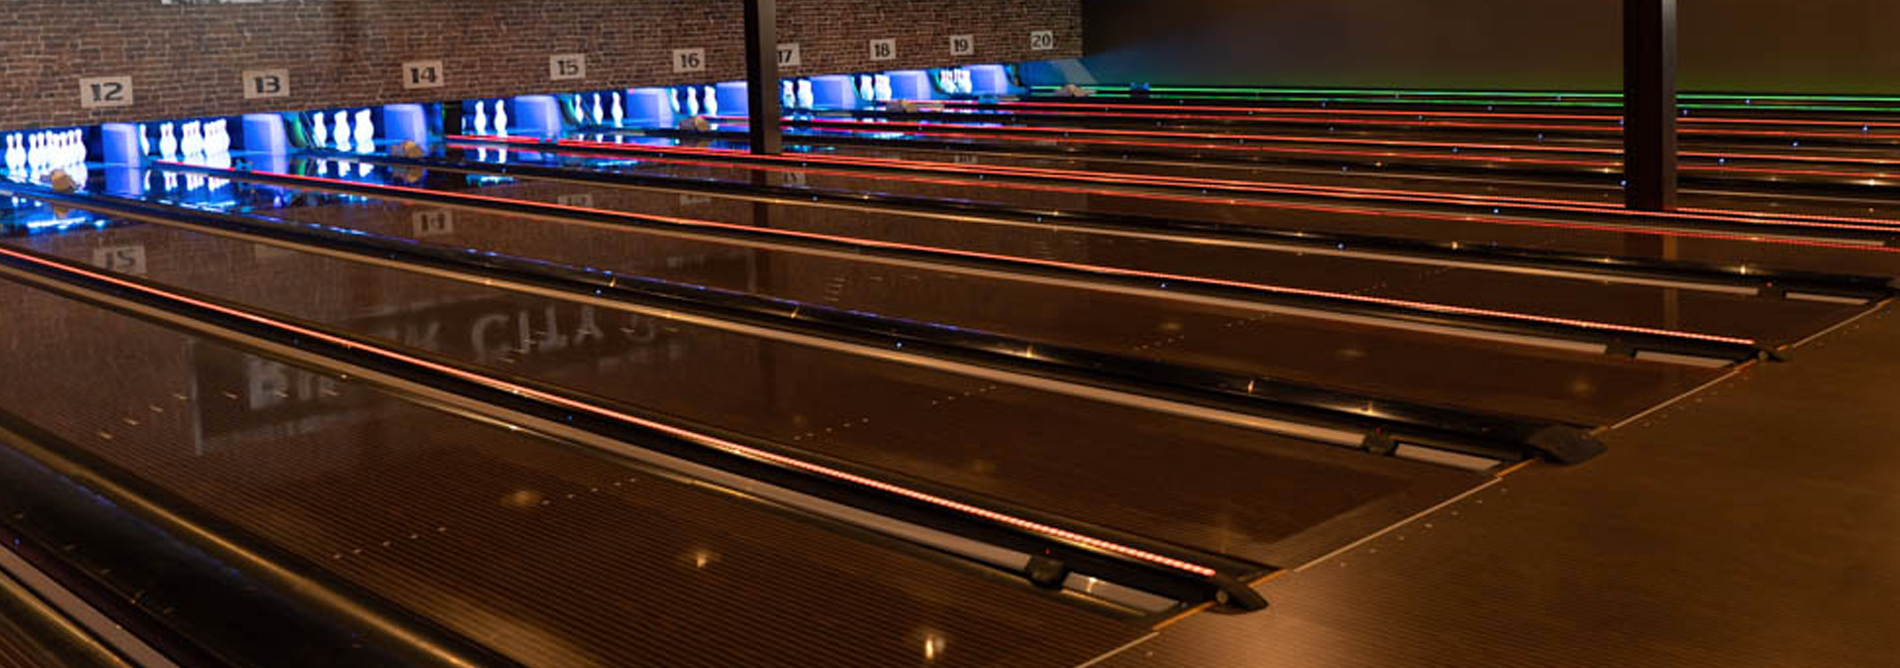 Bowling-QubicaAMF-CAPPING-LIGHTS-Brochures-banner.jpg